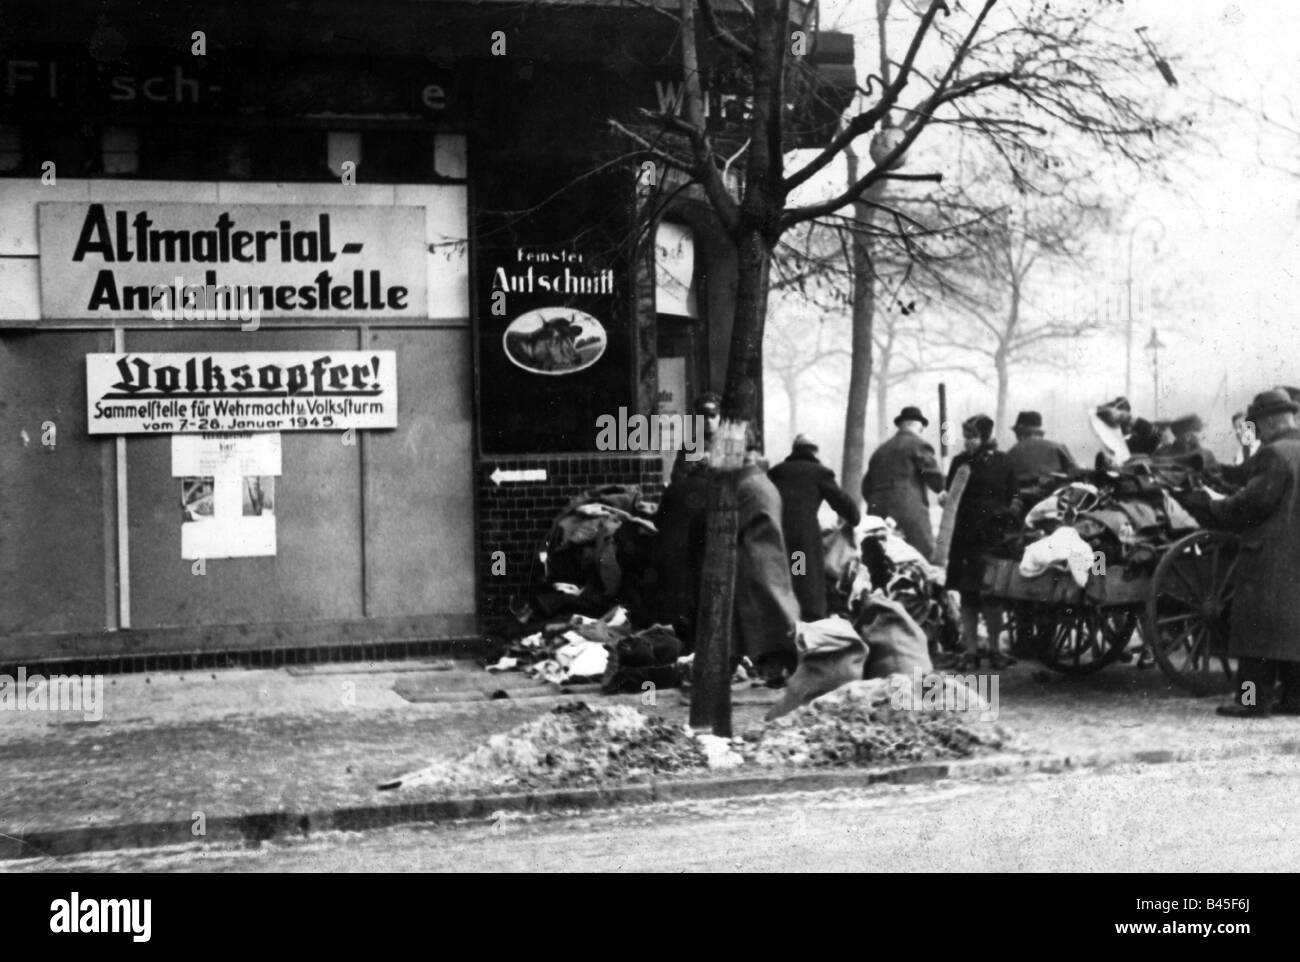 events, Second World War / WWII, Germany, potential recyclable collection for Wehrmacht and Volkssturm, 7. - 28.1.1945, - Stock Image